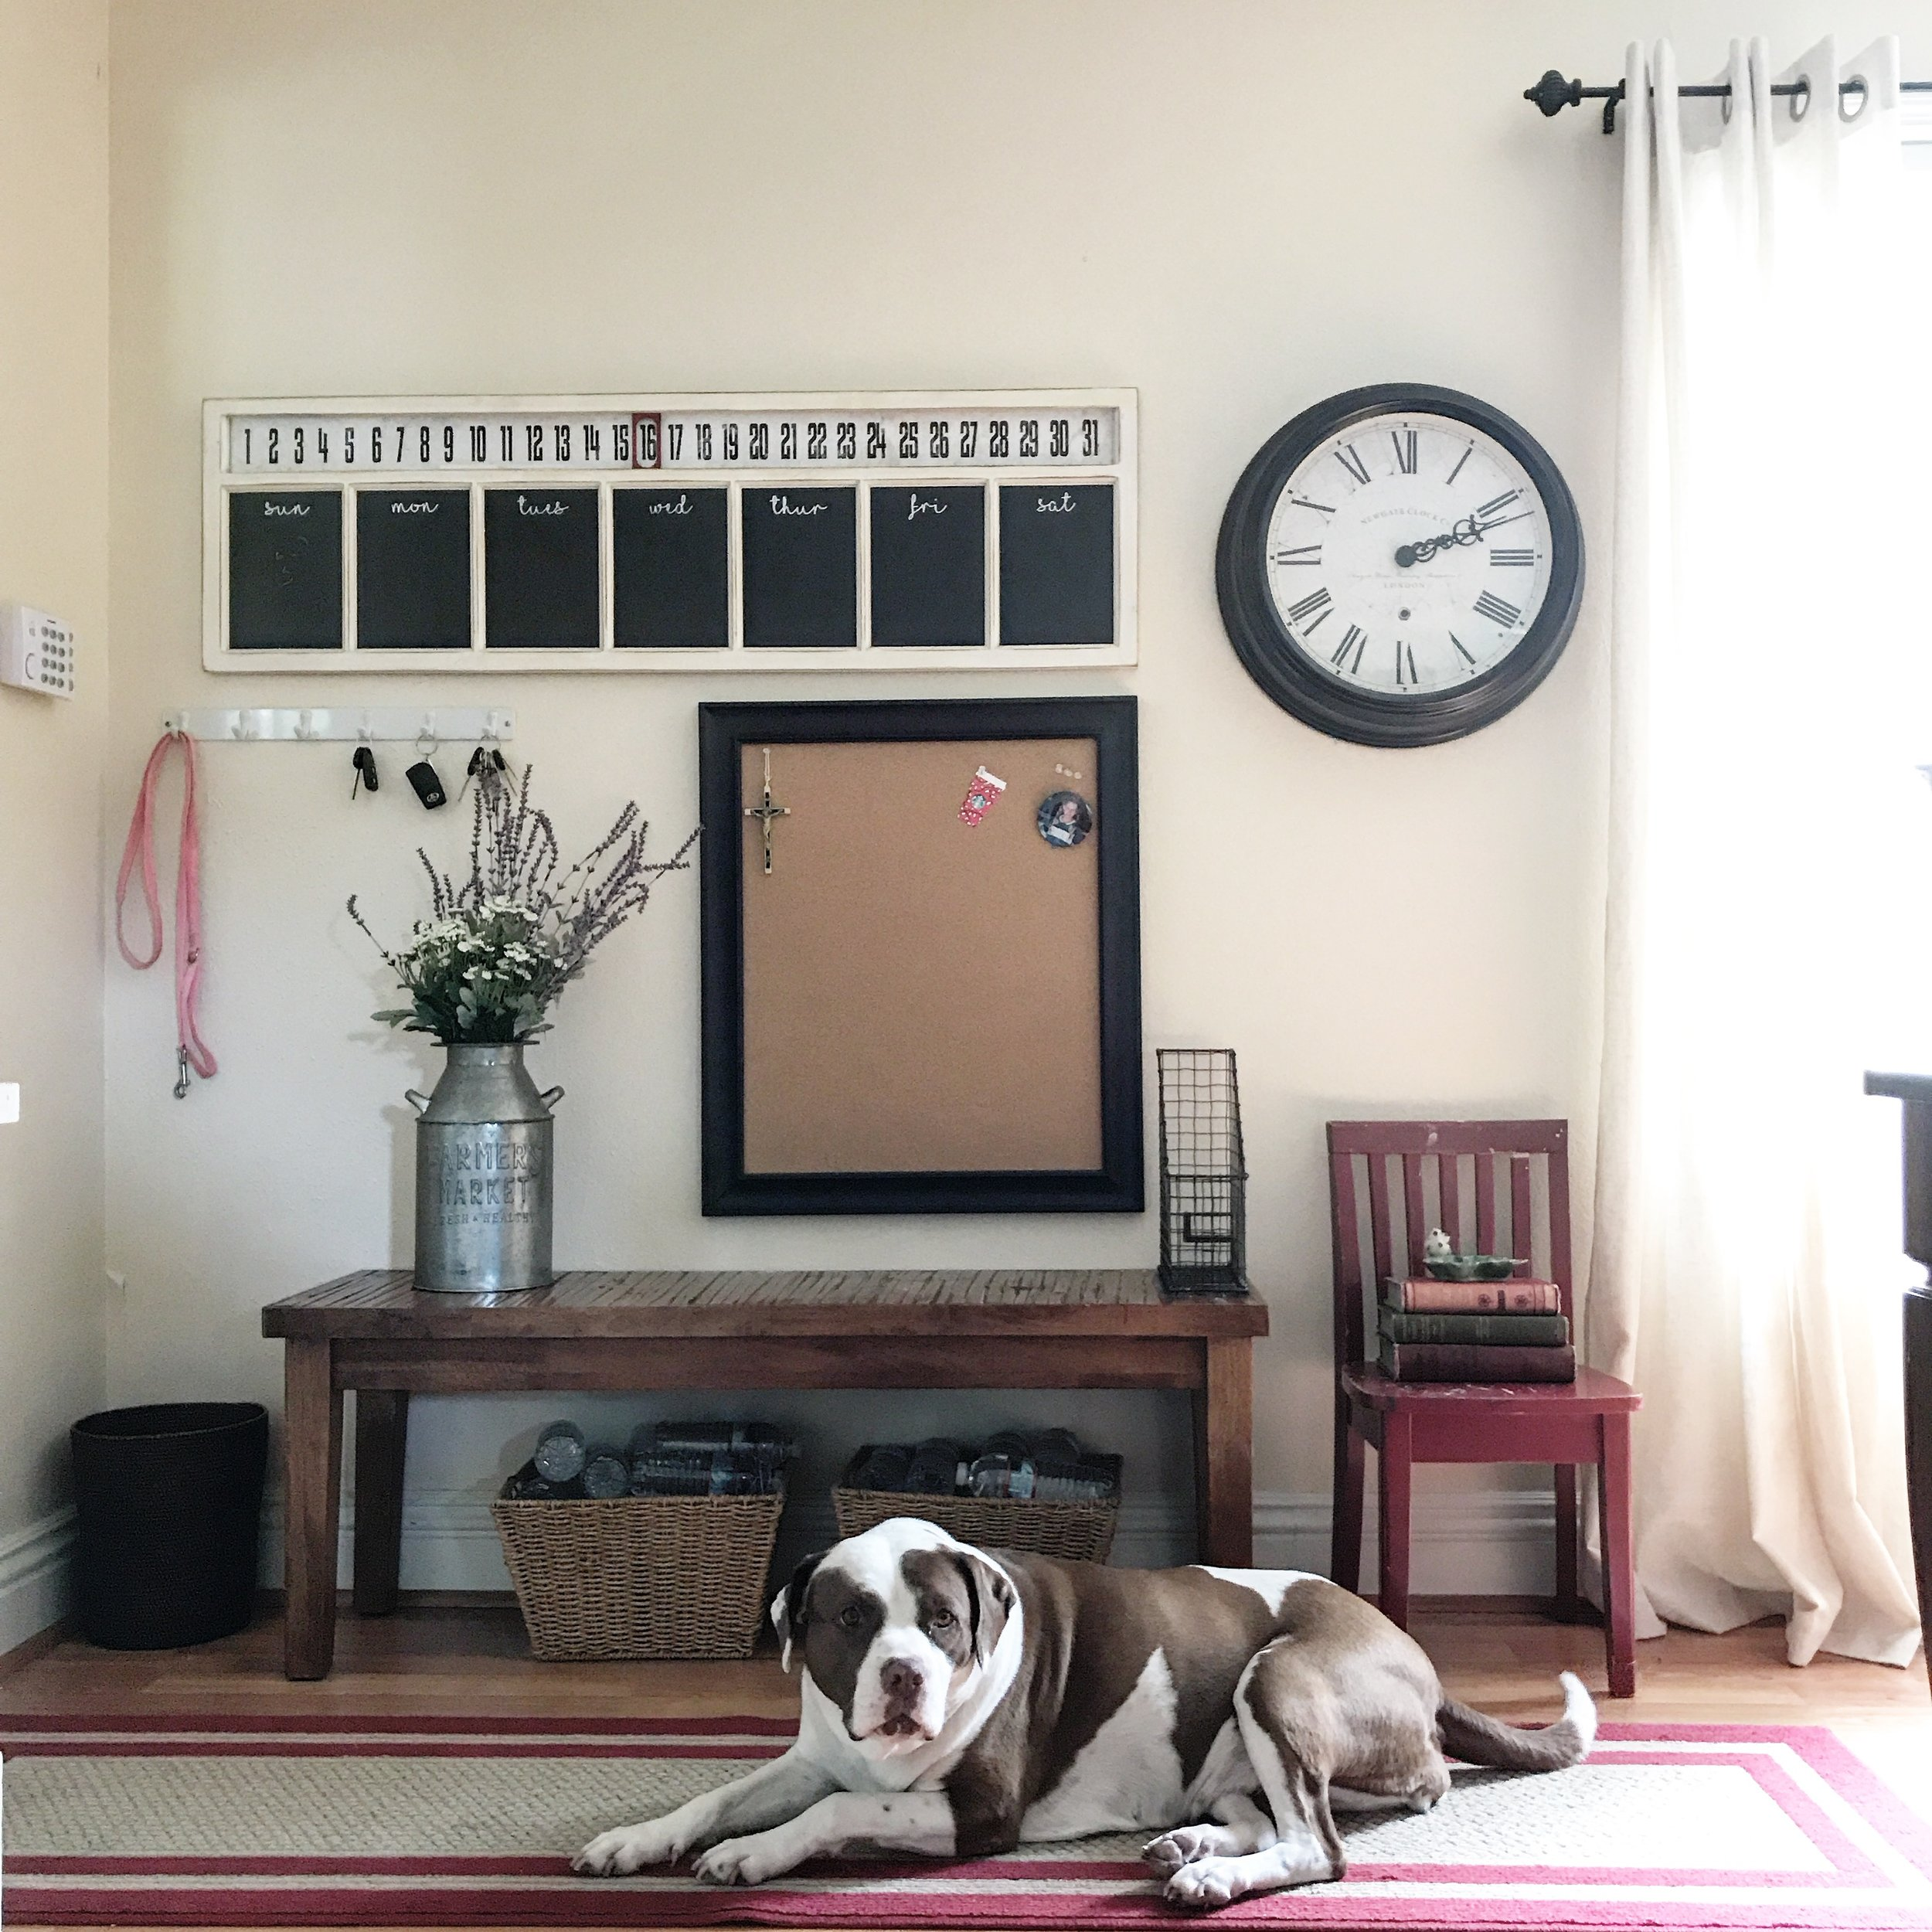 I didn't even tell the dog to lie down there. I was trying to get a good shot and she walked in and positioned herself perfectly for the picture. Because she's psychic. Because she knew I was trying to imitate Pottery Barn. Or at least get 3.2k likes on Pinterest.